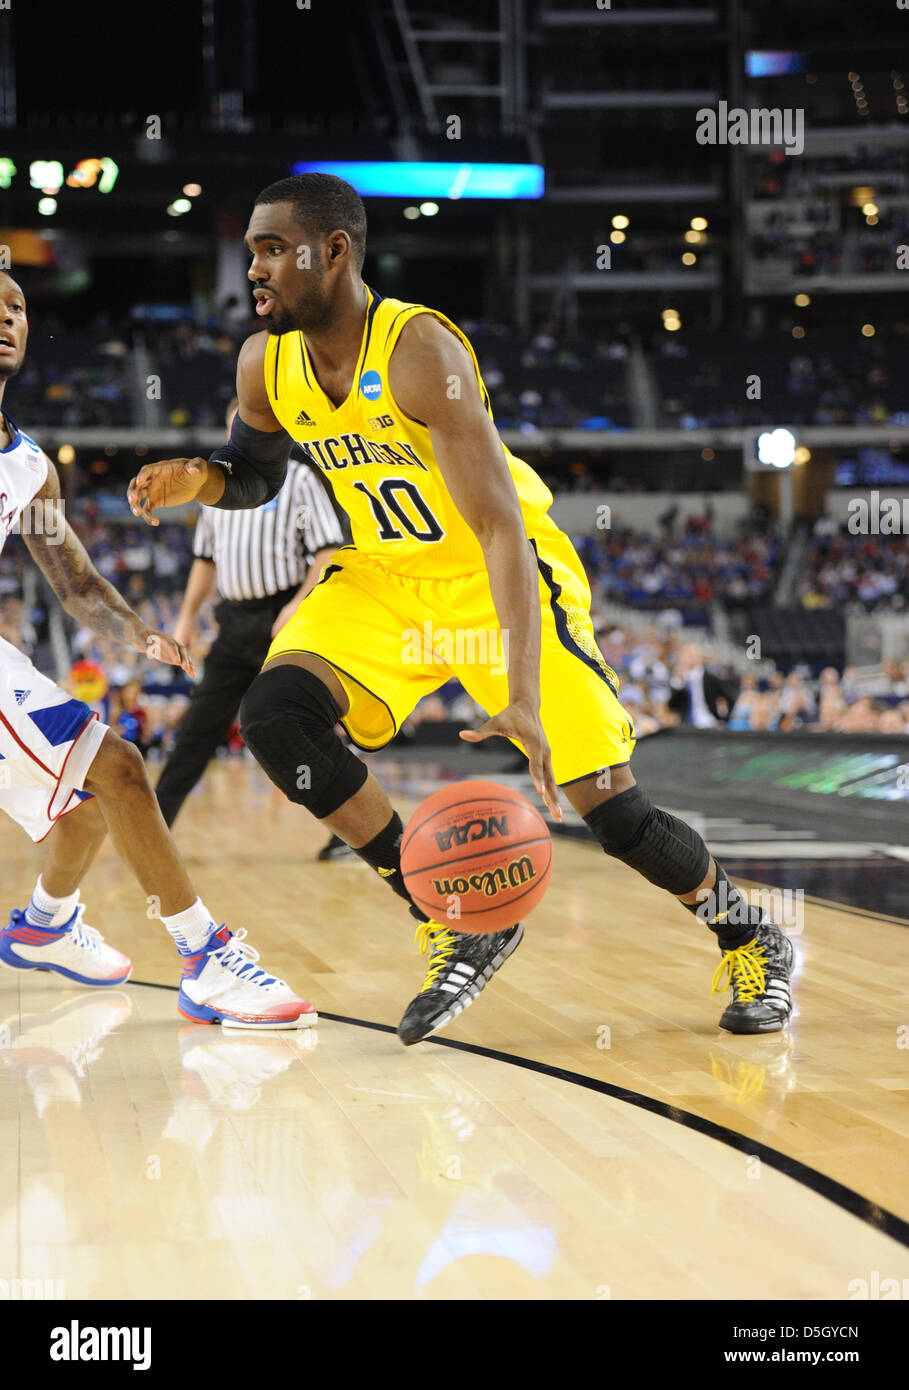 promo code 60de4 63939 March 29, 2013: Michigan Wolverines guard Tim Hardaway Jr ...